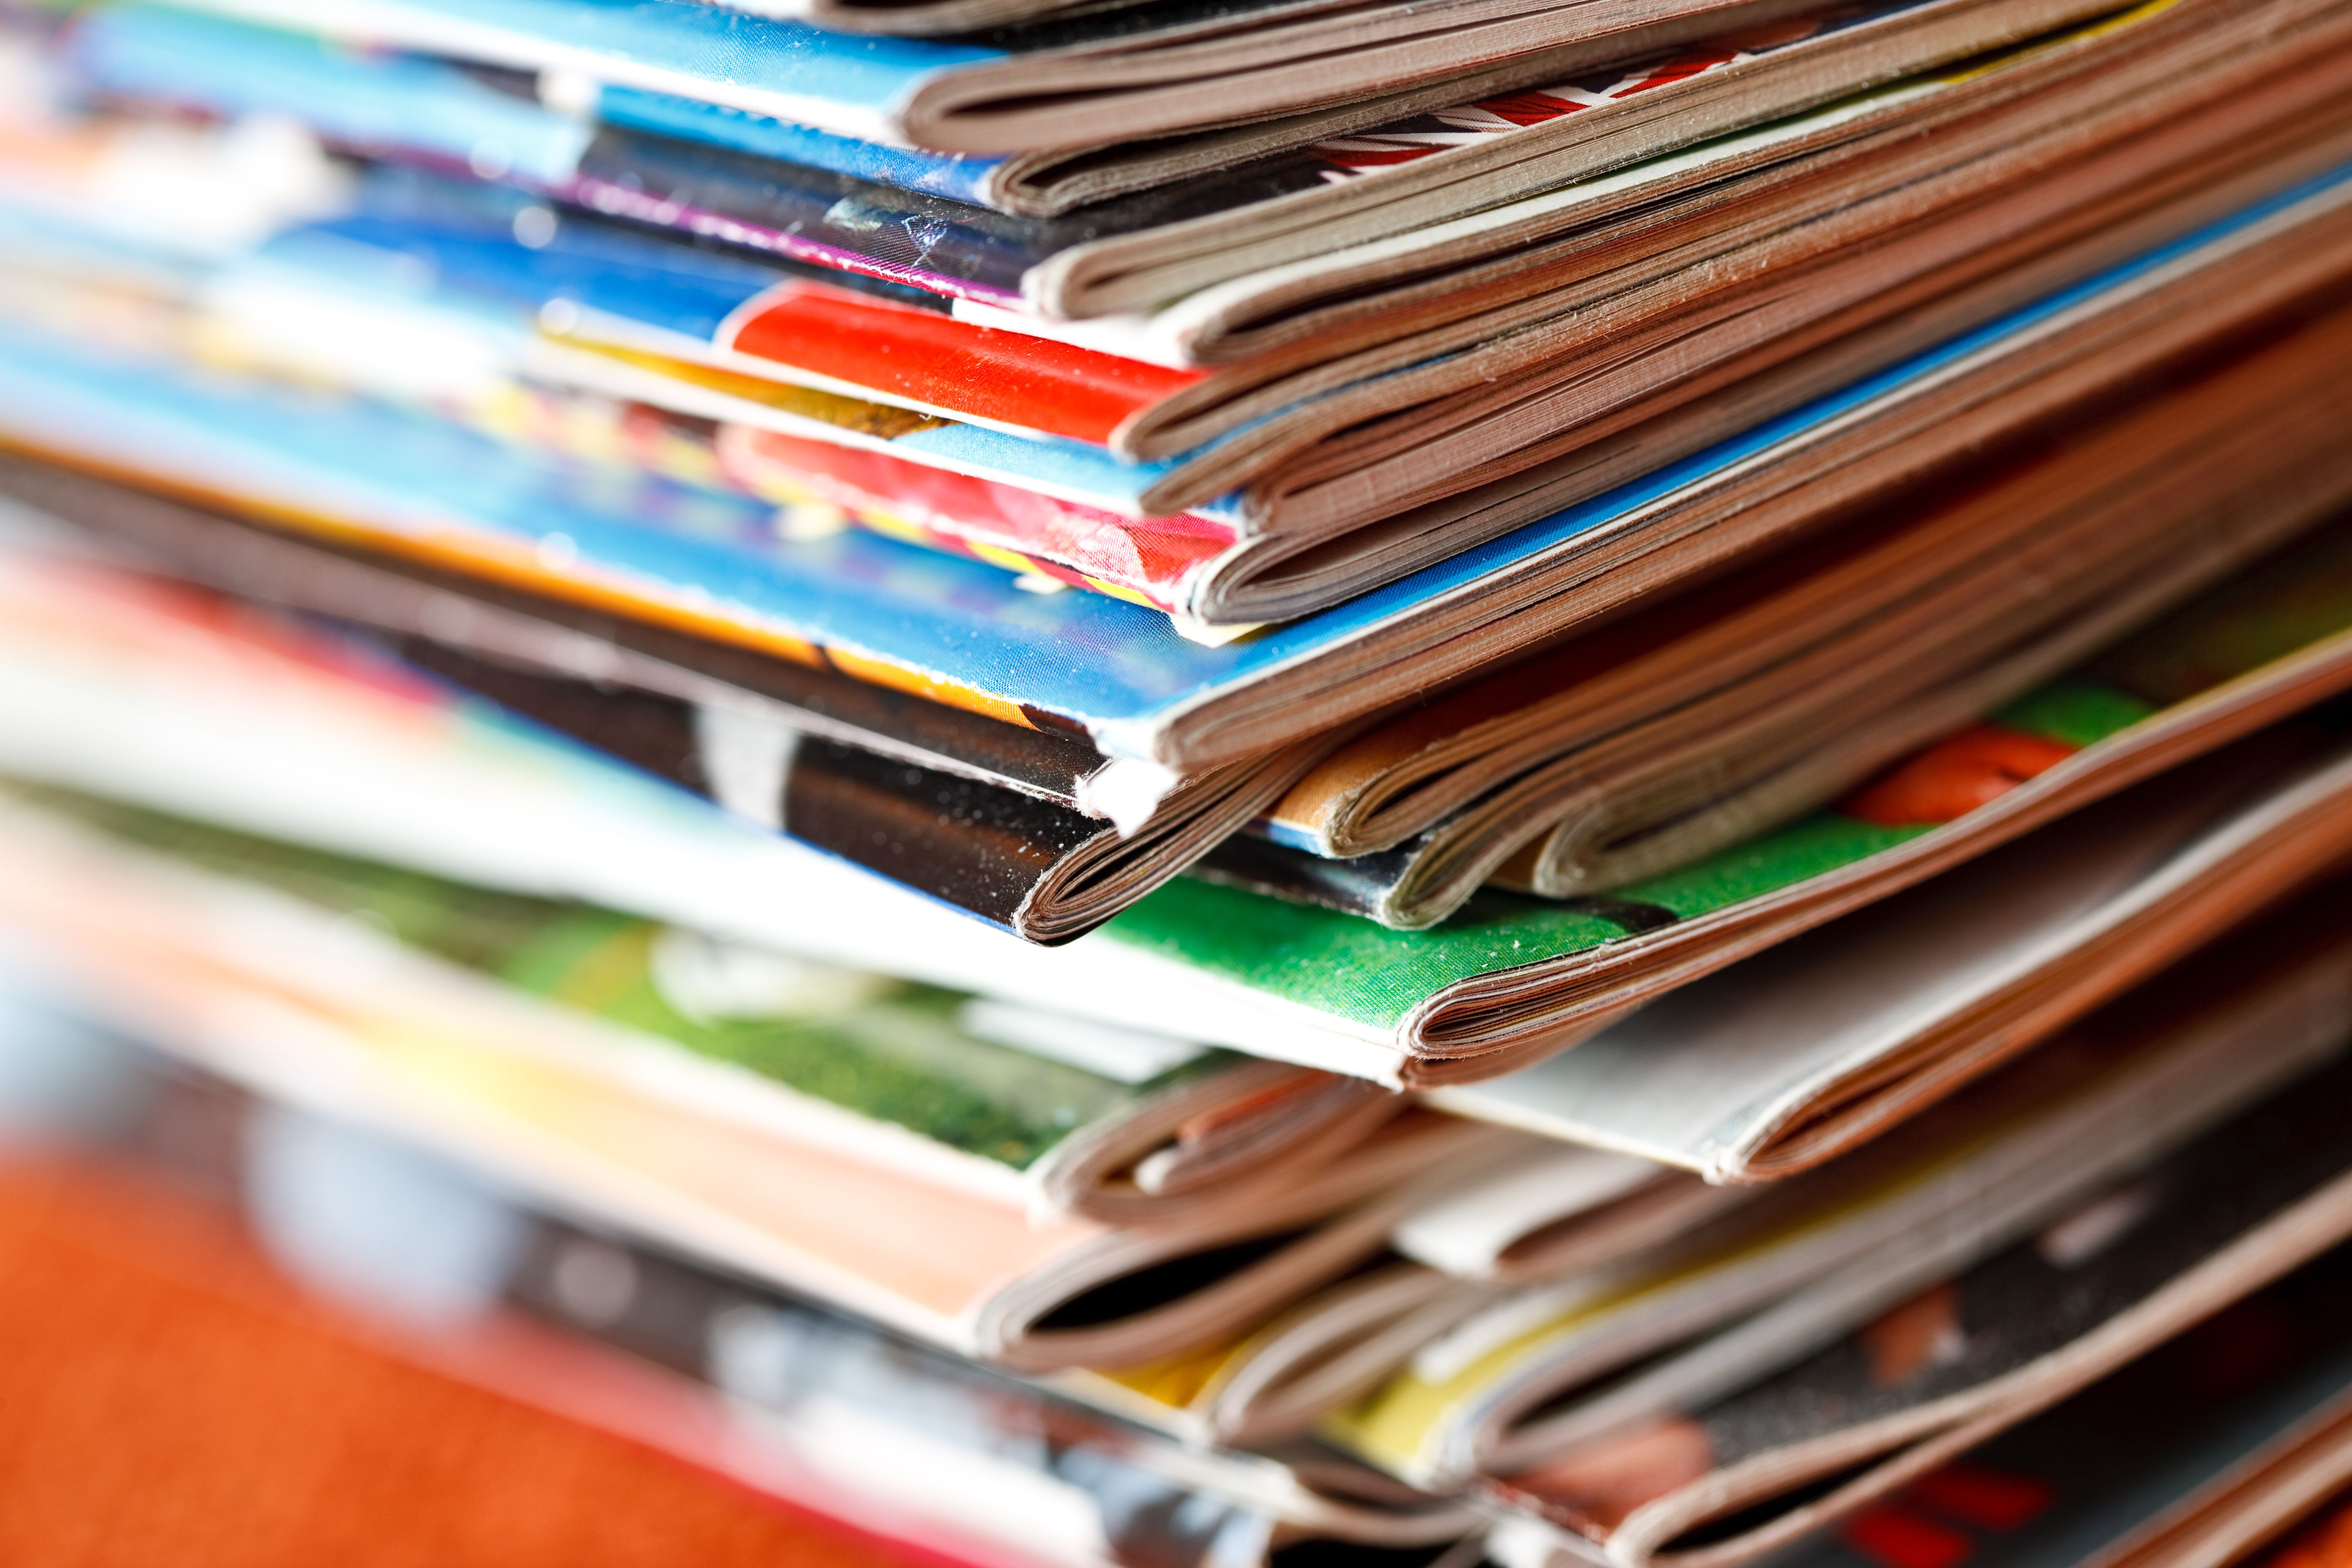 How To Unsubscribe From Unwanted Hearst Magazine Subscriptions